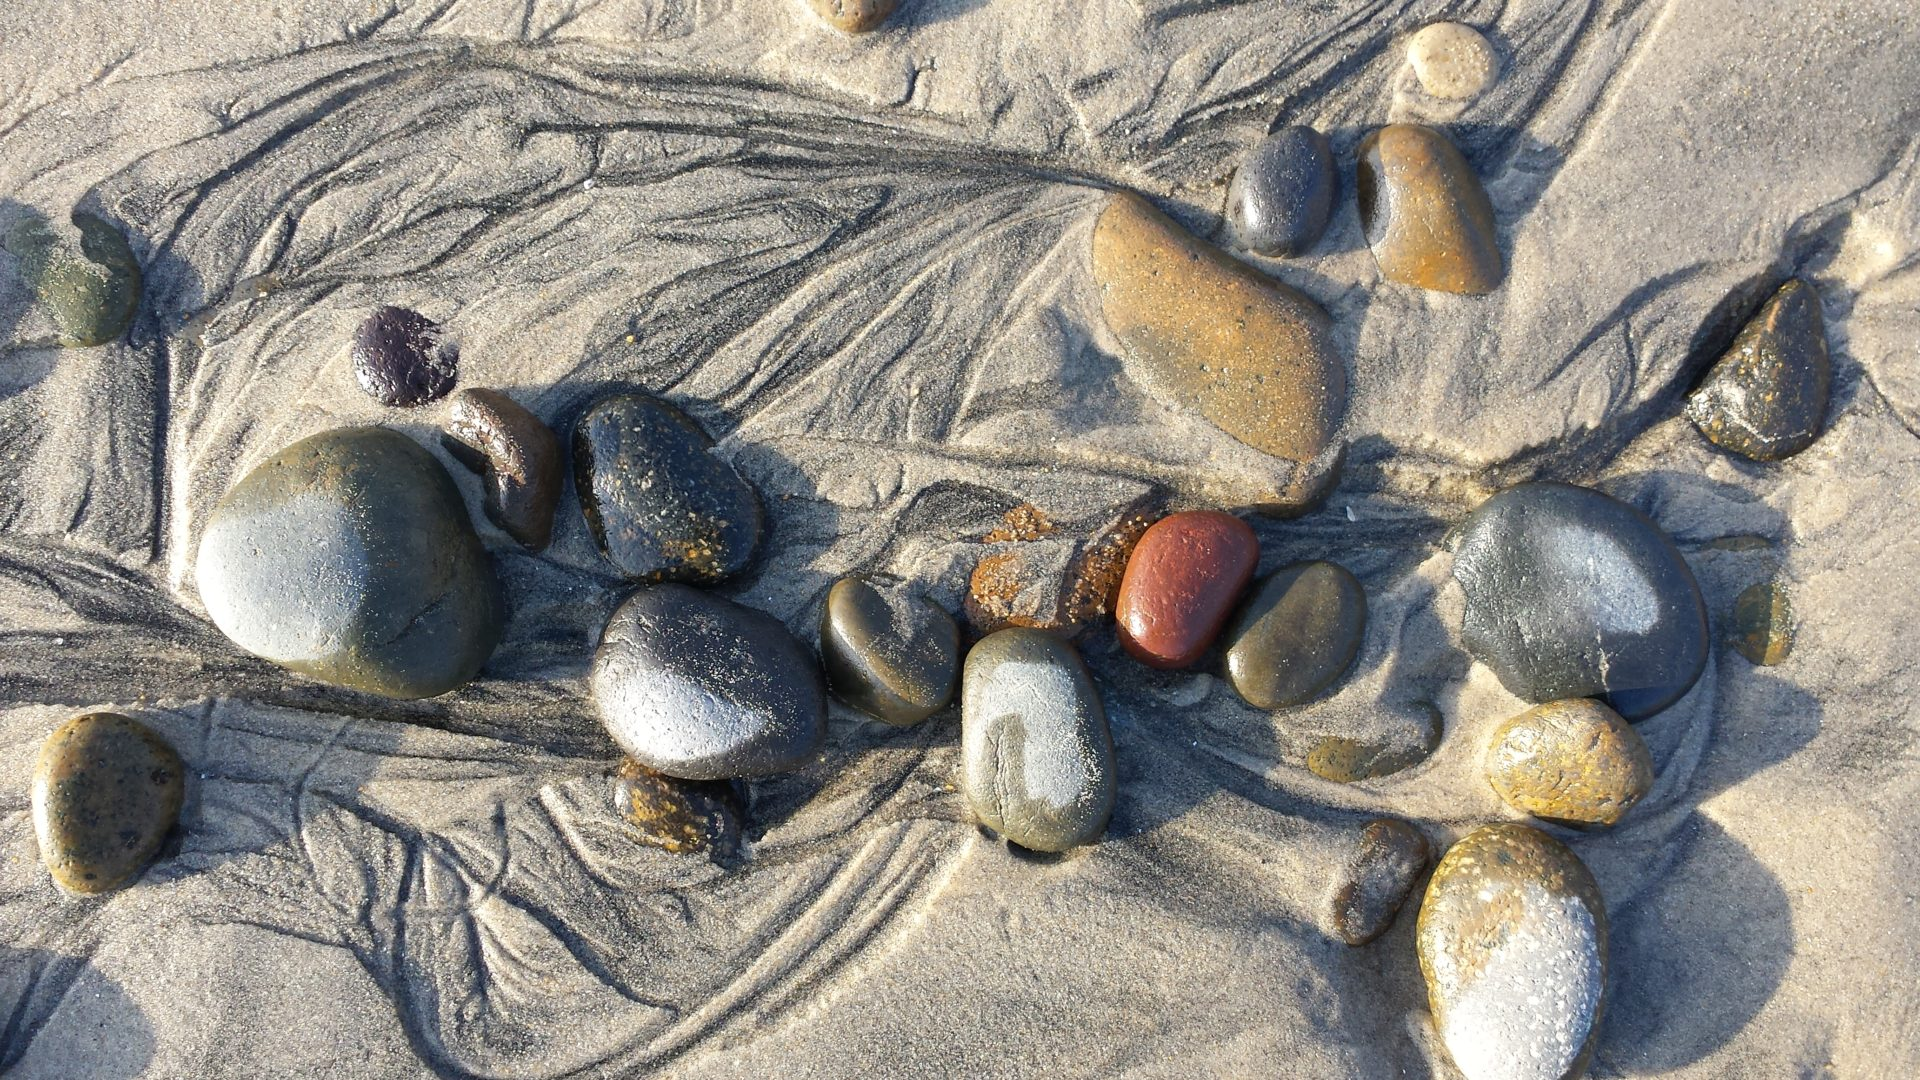 Stones in wave patterns